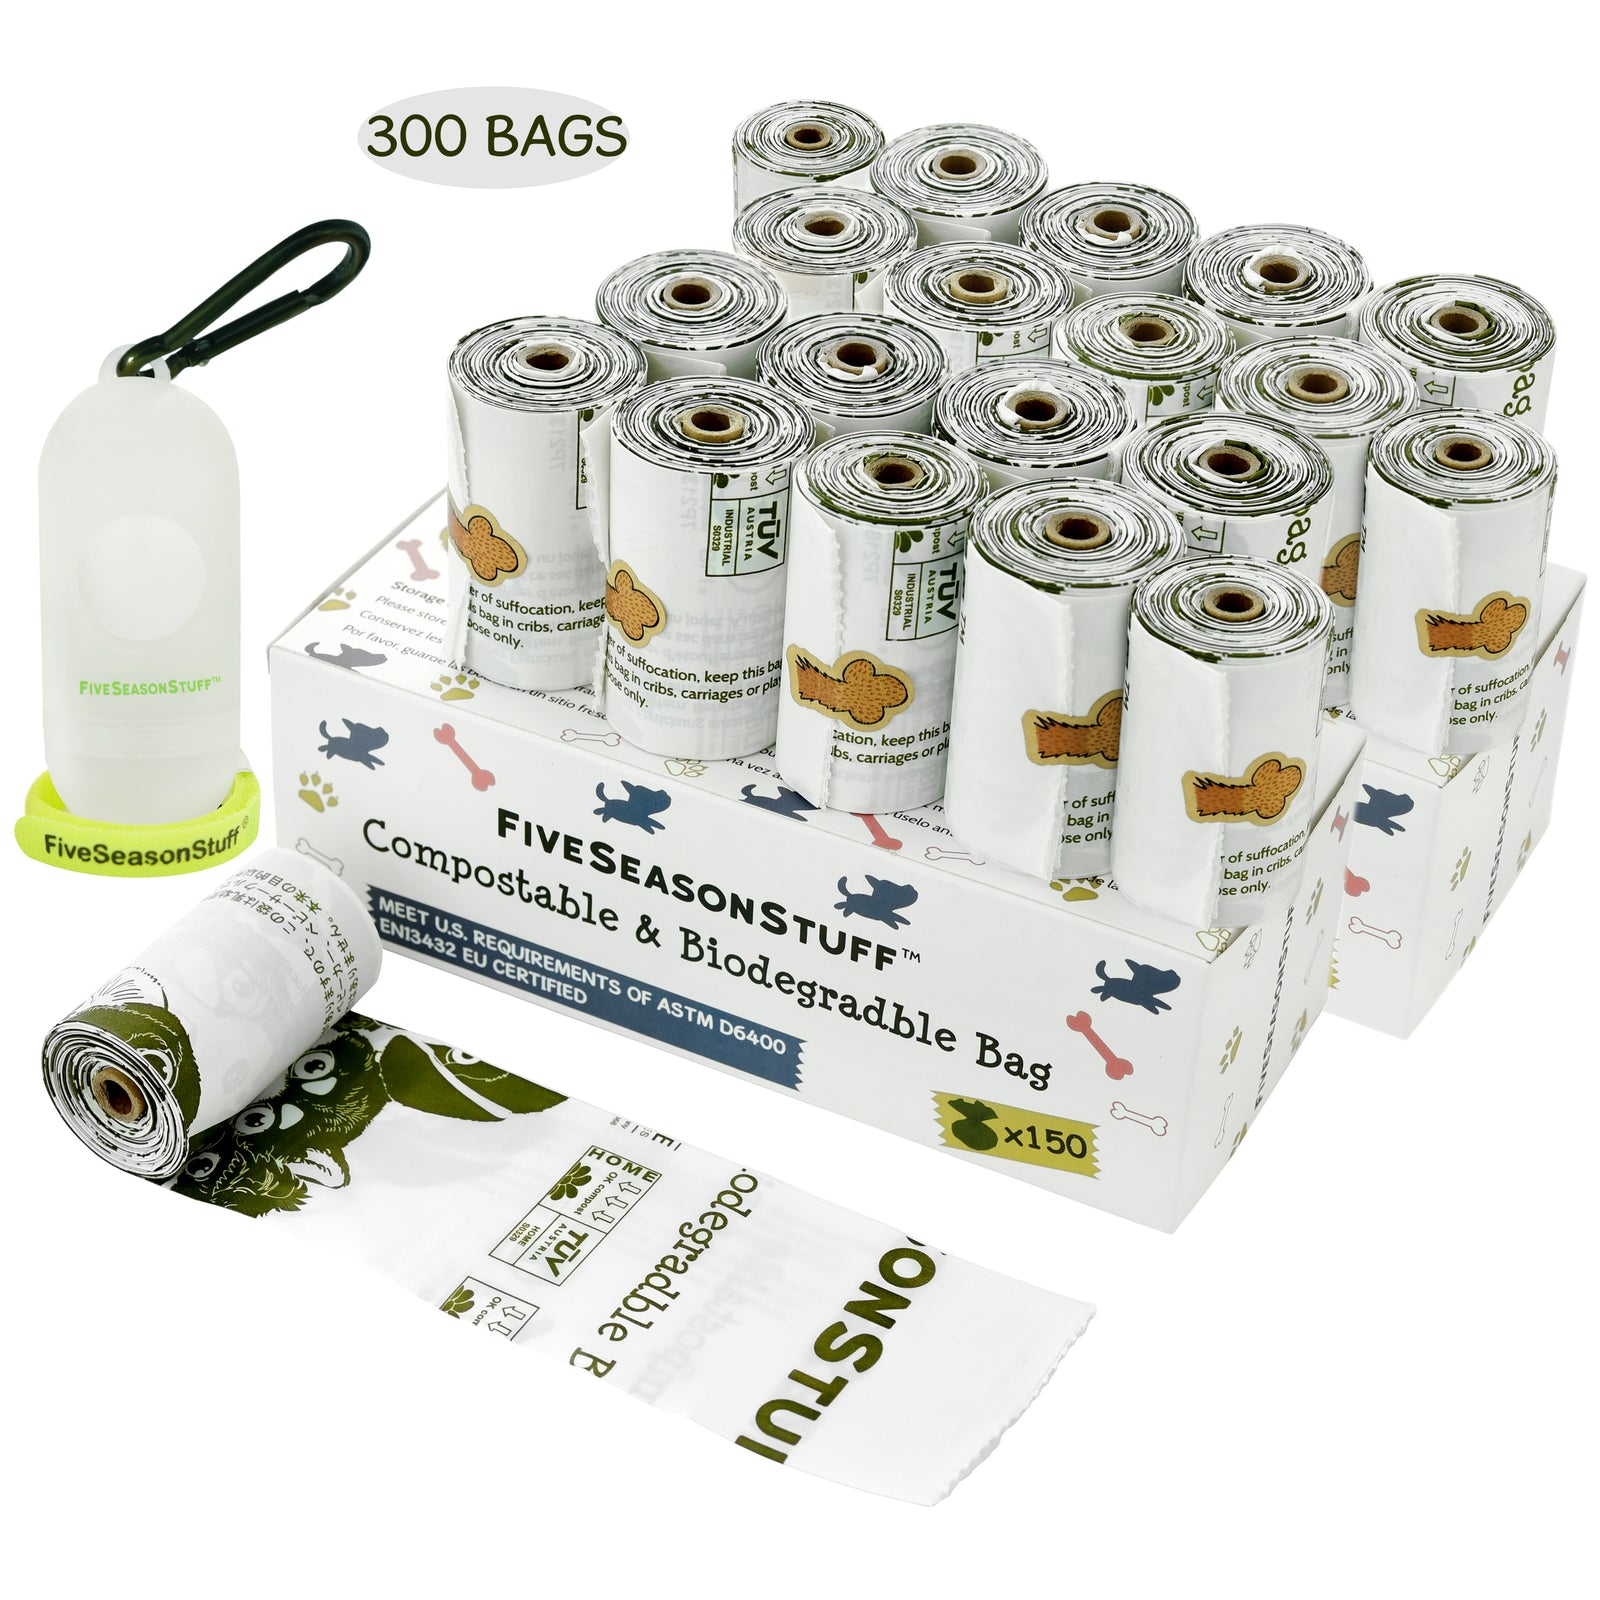 FiveSeasonStuff 300 Dog Poop Bags with Lease Holder (White – Unscented) 100% Biodegradable & Compostable in 3-5 Months